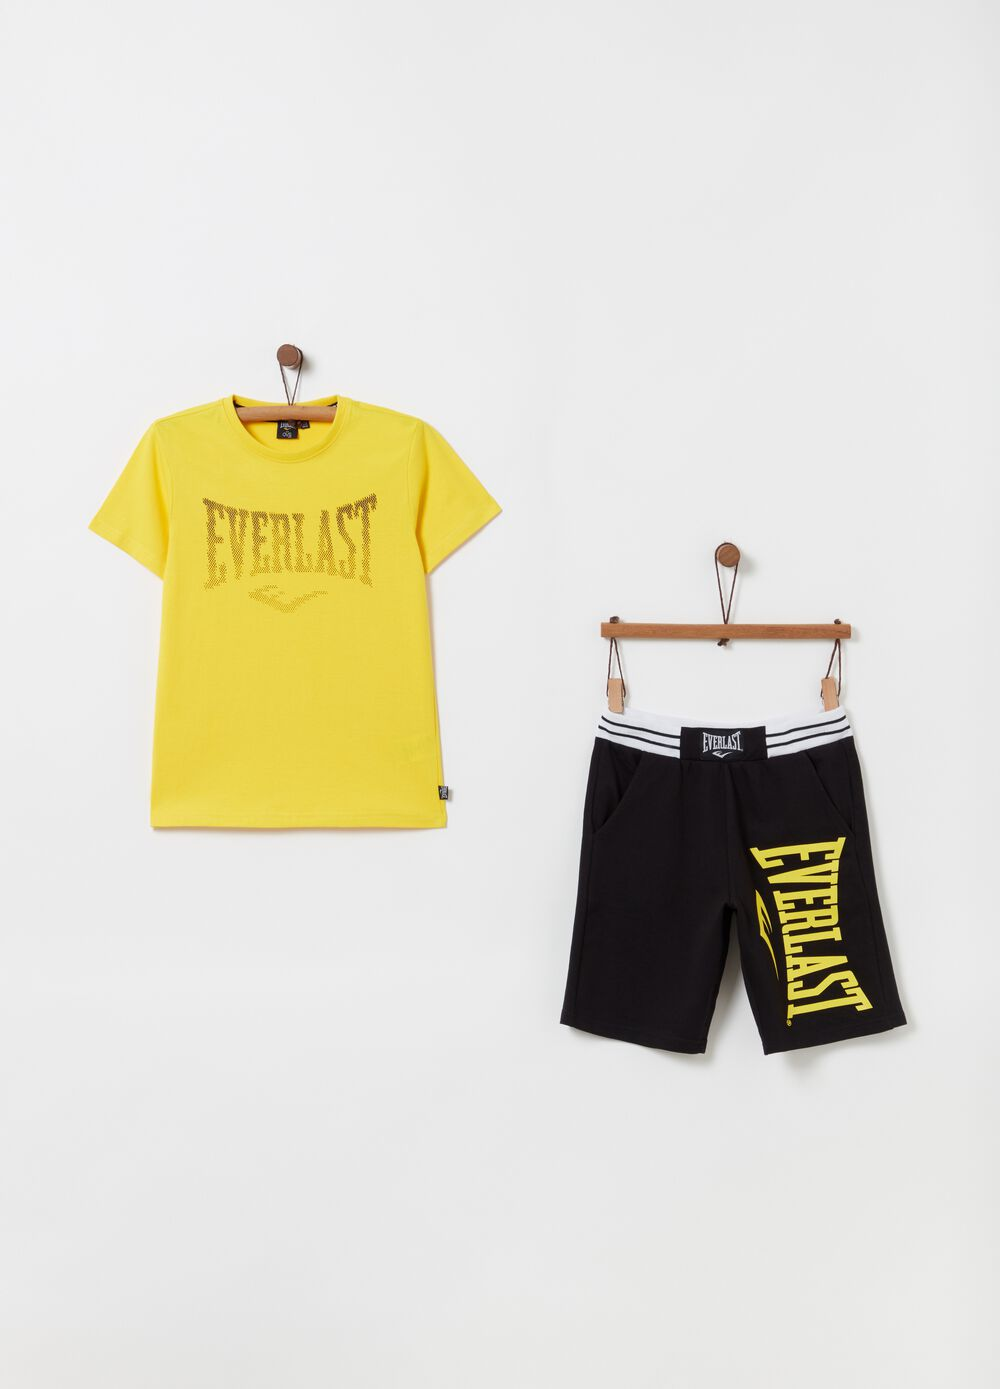 Everlast T-shirt and shorts jogging set